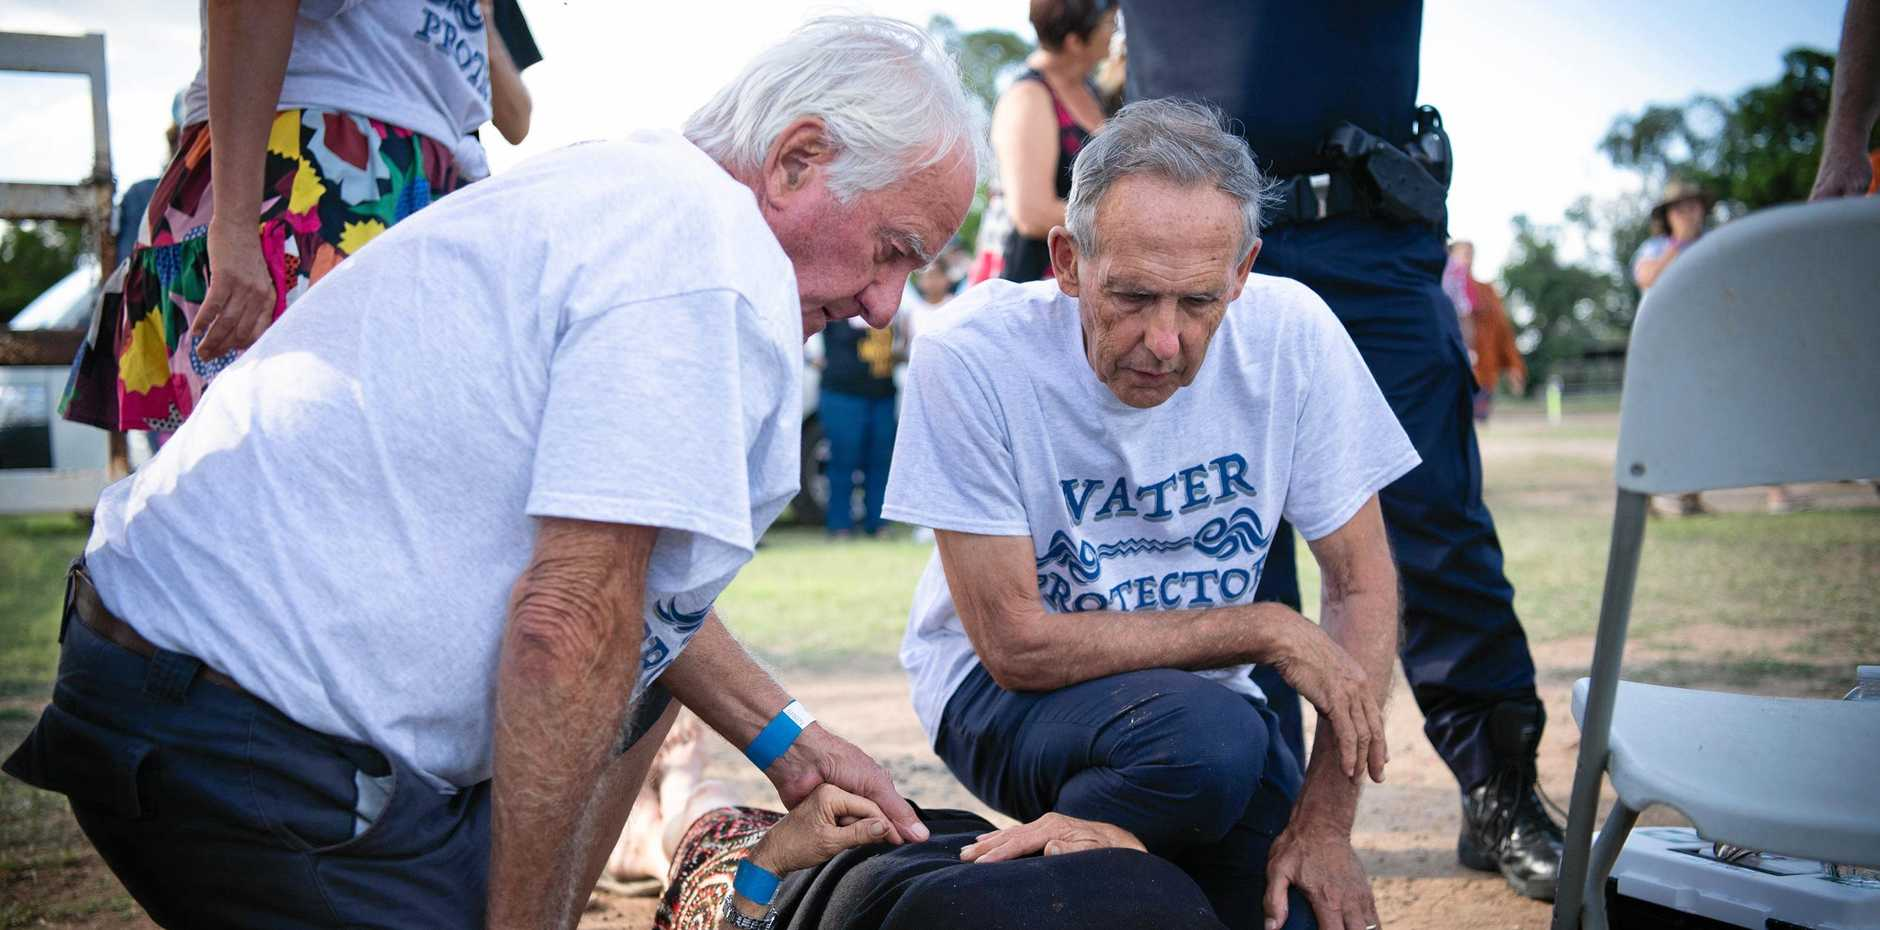 Supplied image obtained Sunday, April 28, 2019 of former Greens leader Bob Brown (right) with a northern NSW woman who was injured during a Stop Adani Convoy event in Clermont. A man on horseback has been arrested after he allegedly knocked over a woman while riding into an anti-Adani protest in central Queensland. (AAP Image/Matthew Newton/Bob Brown Foundation) NO ARCHIVING, EDITORIAL USE ONLY